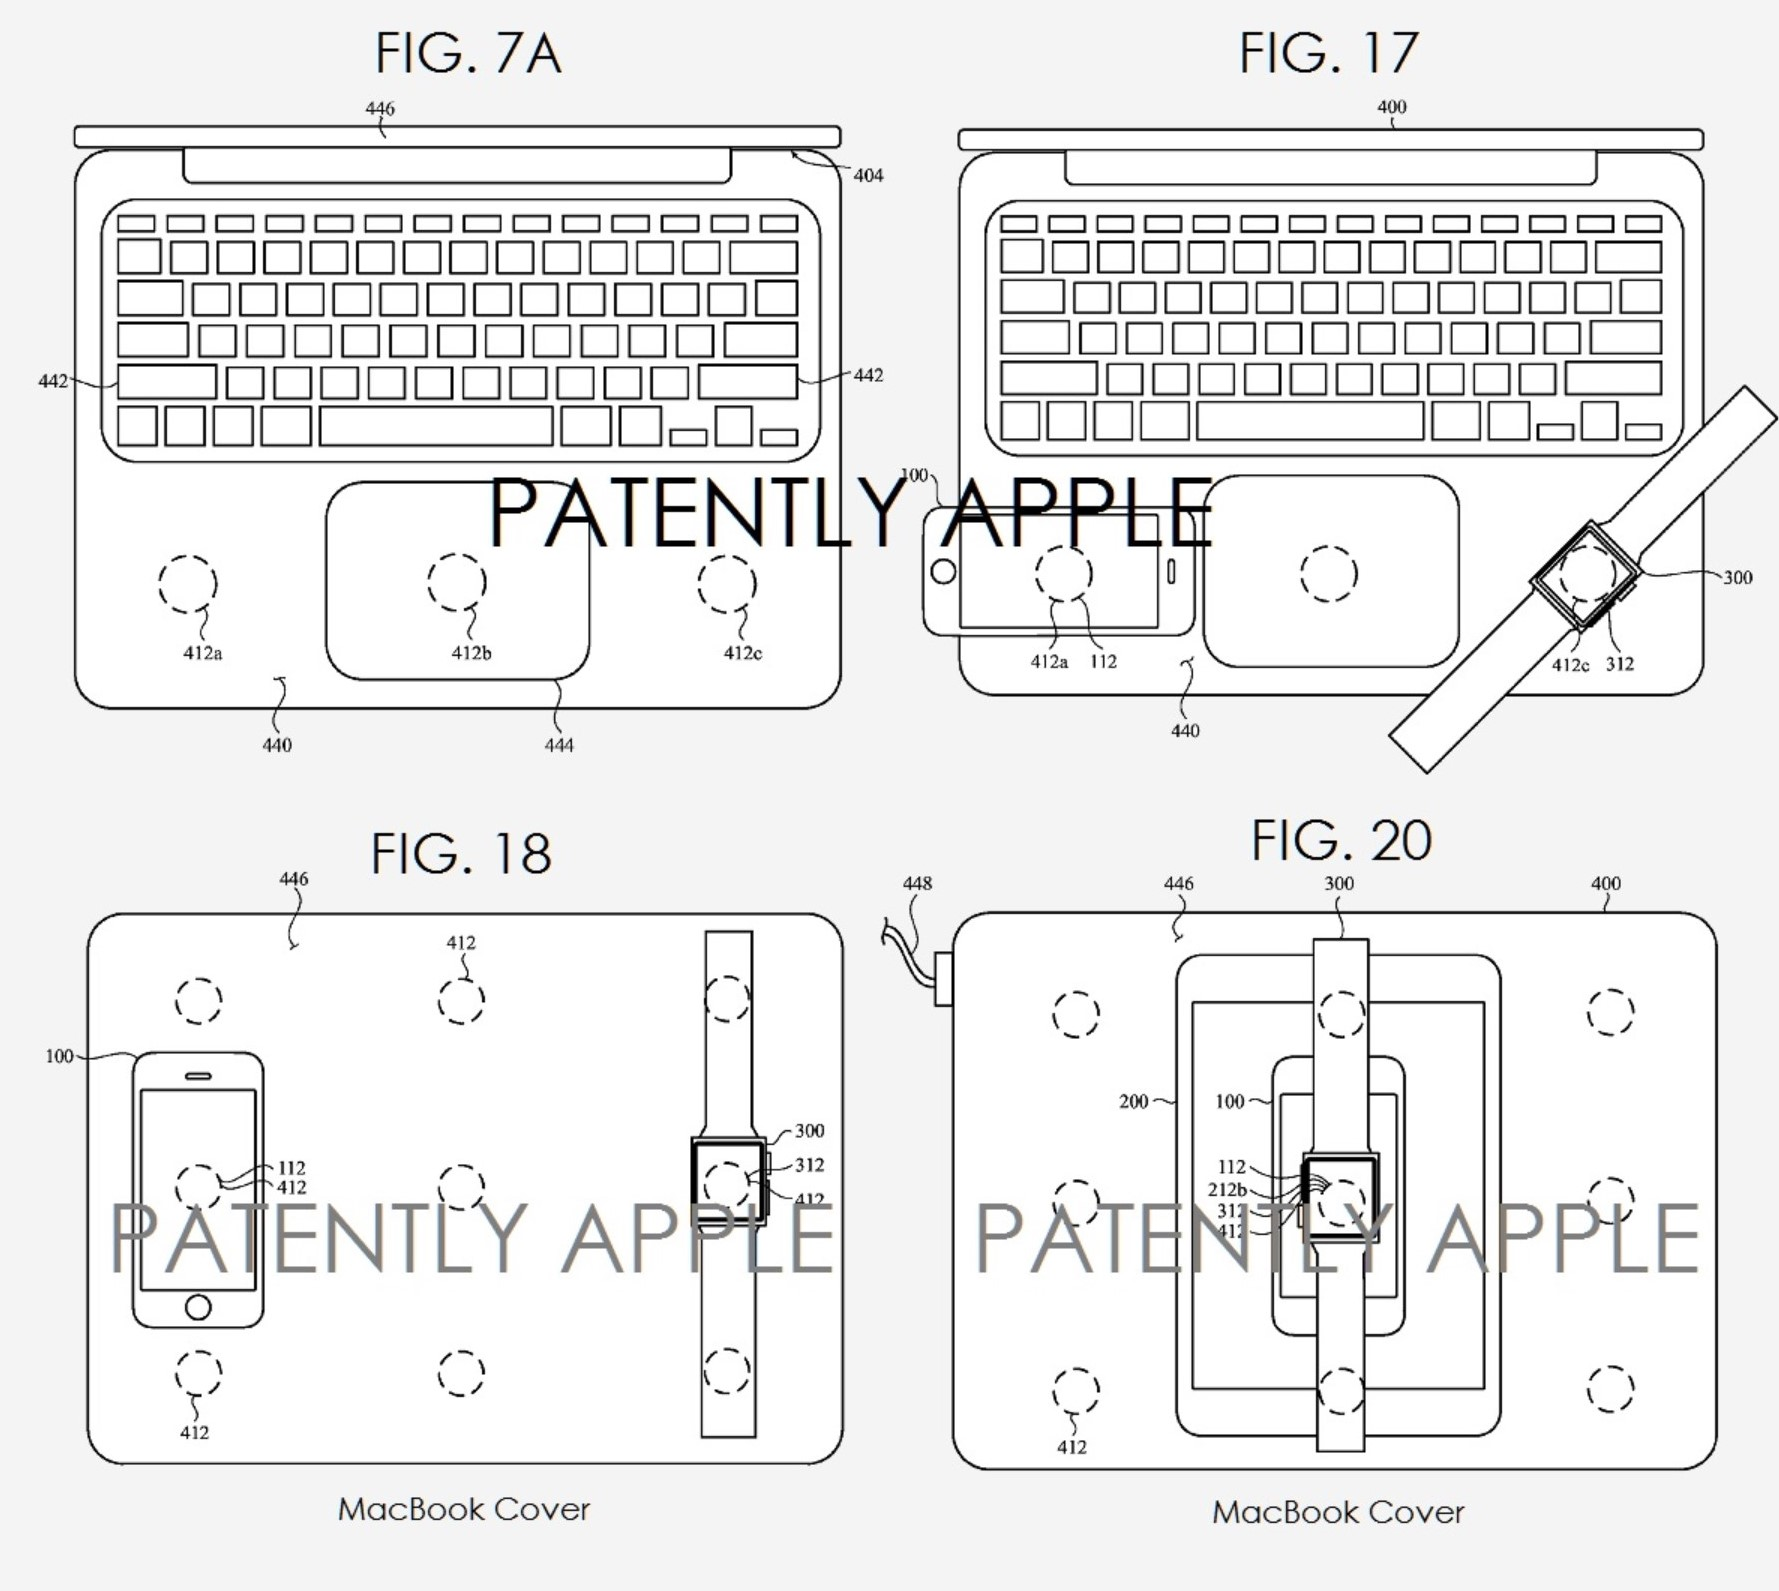 MacBook Pro 16-inch 2021 everything we know: MacBook Pro patent